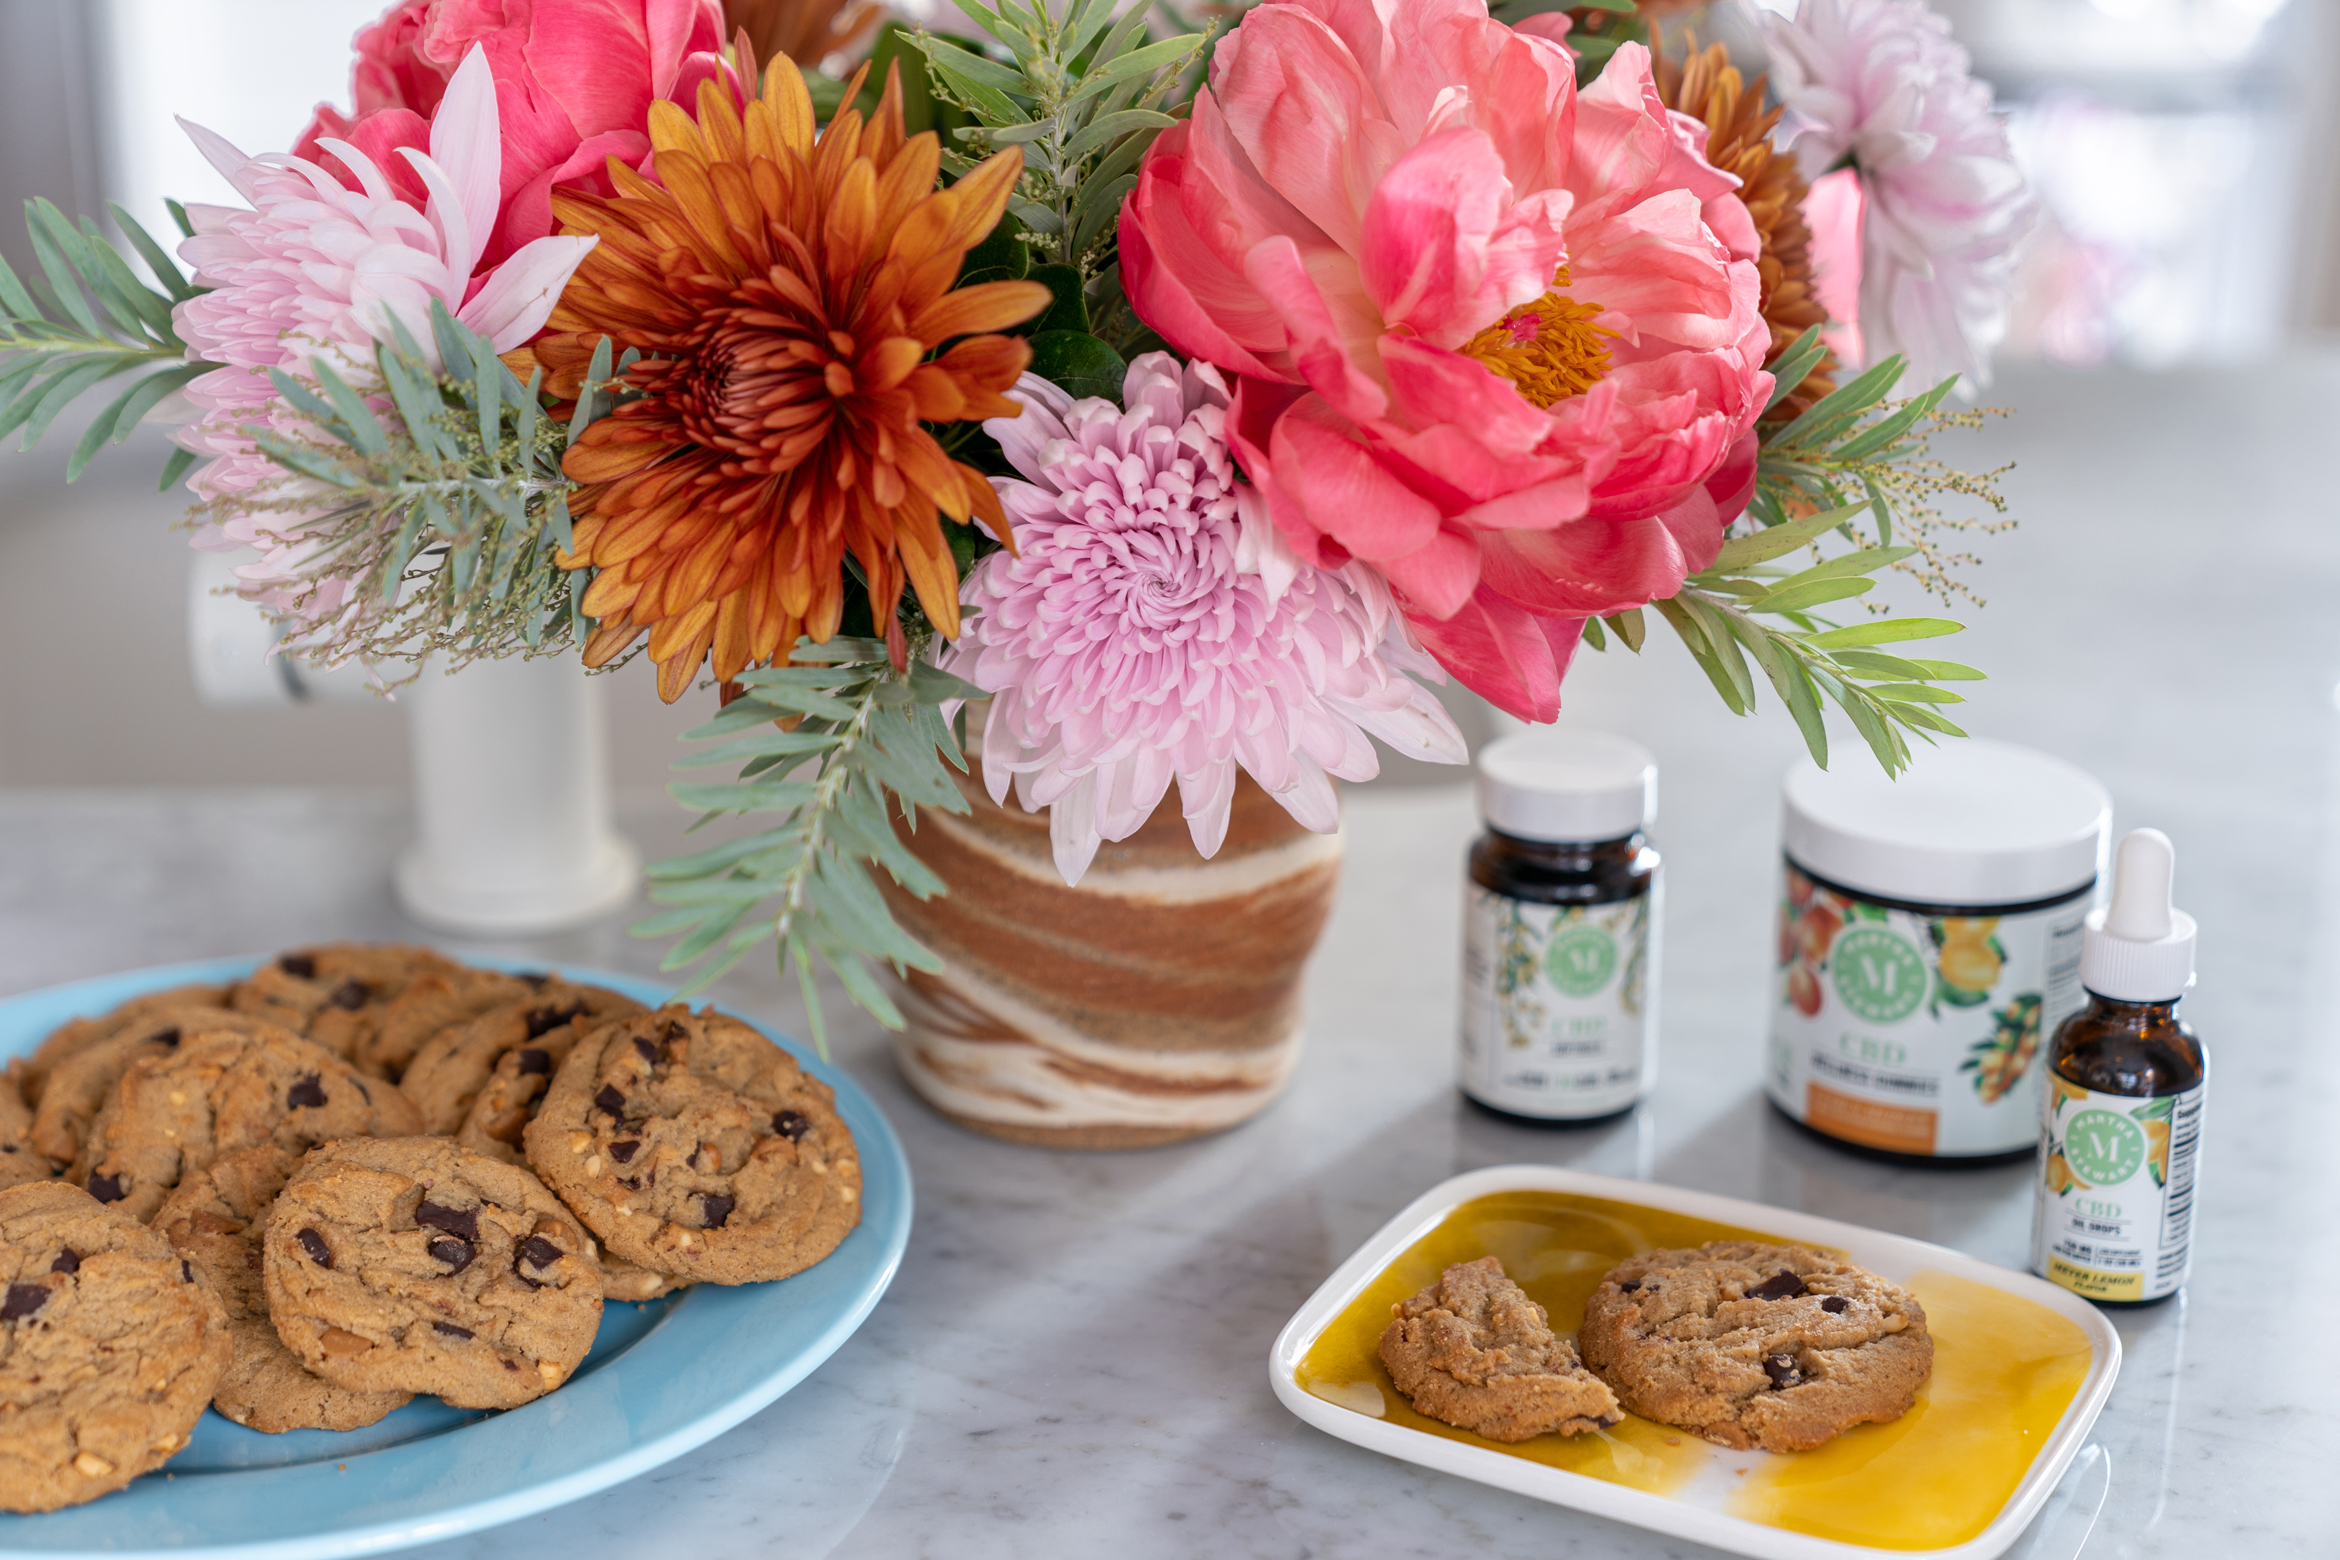 finding and creating moments of calm review of martha stewart cbd